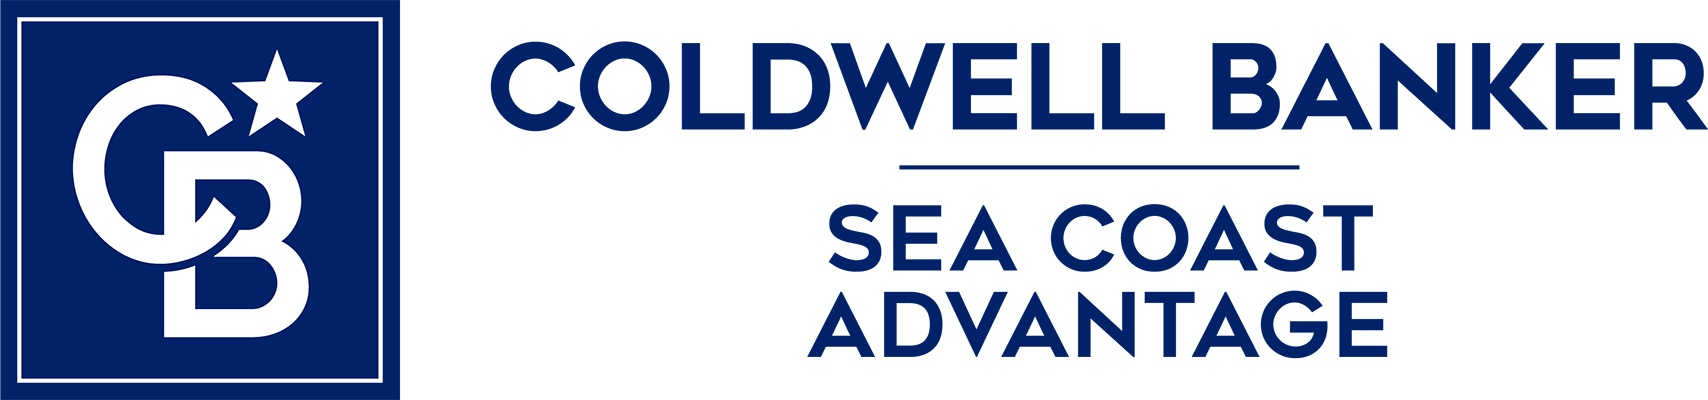 David Fialk - Coldwell Banker Sea Coast Advantage Realty